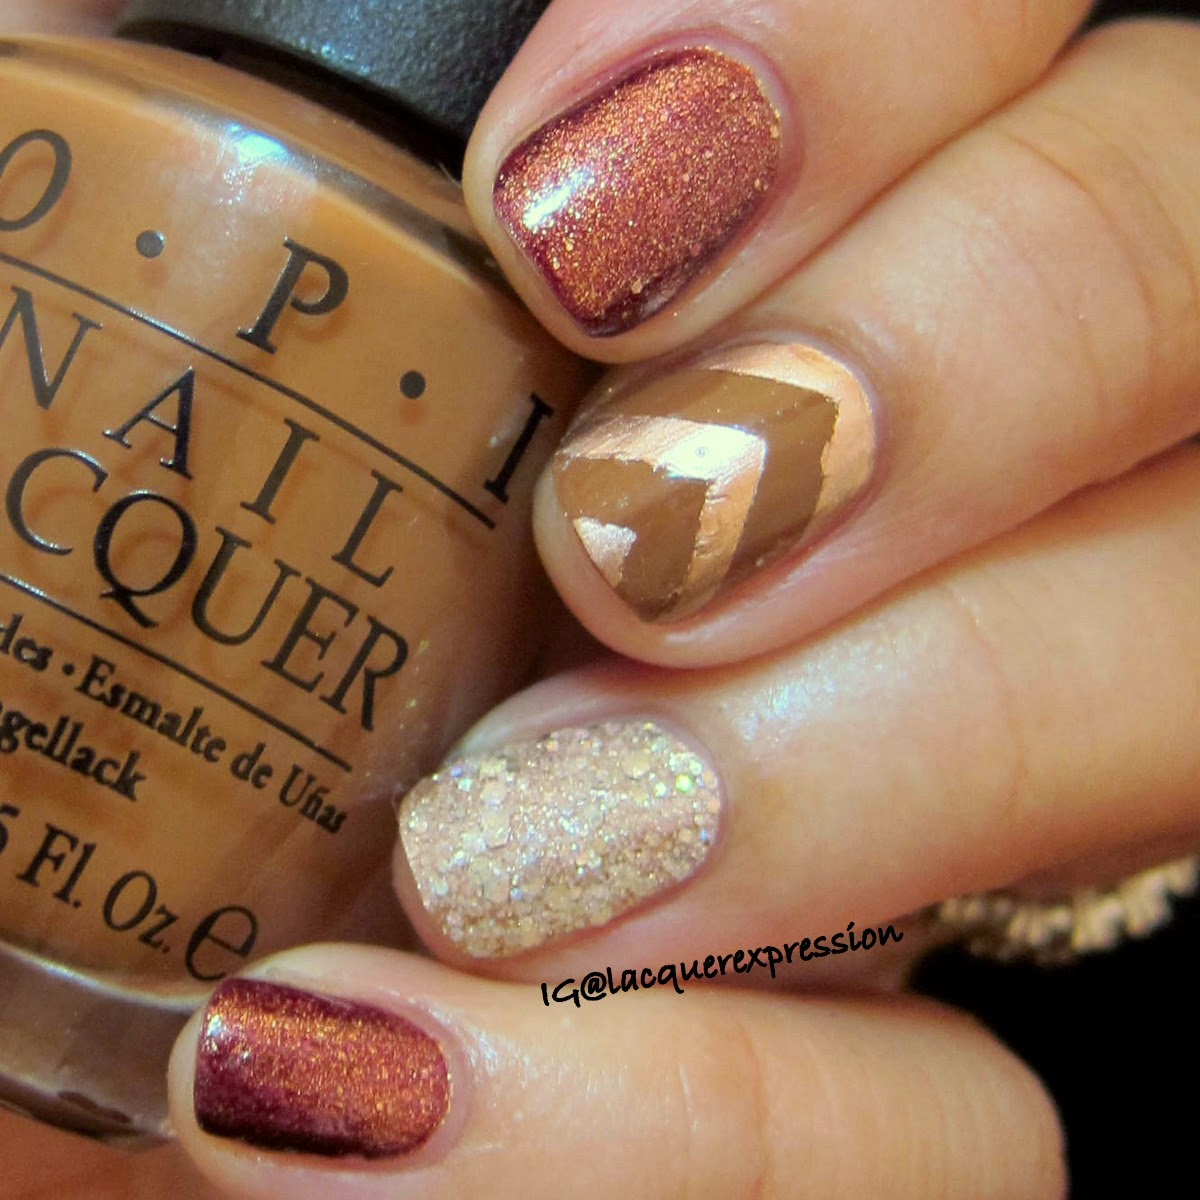 Fall inspired manicure using o.p.i. a-piers to be tan